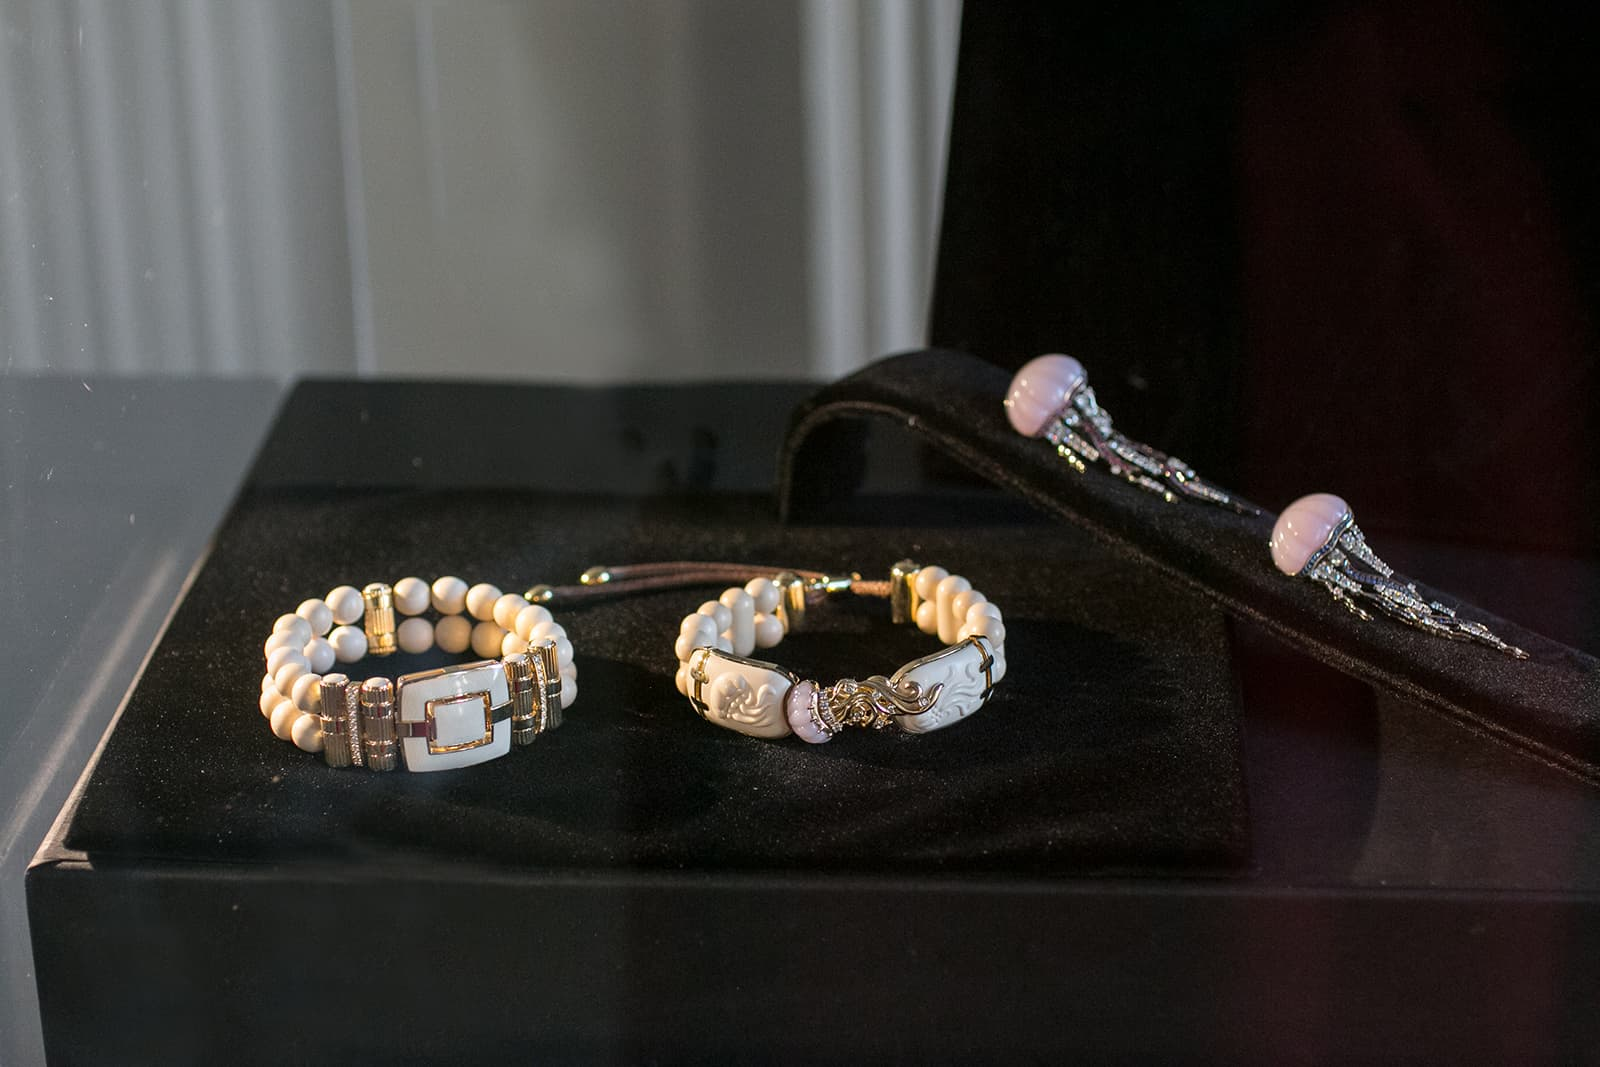 Notivory and ICHIEN mammoth tusk jewellery